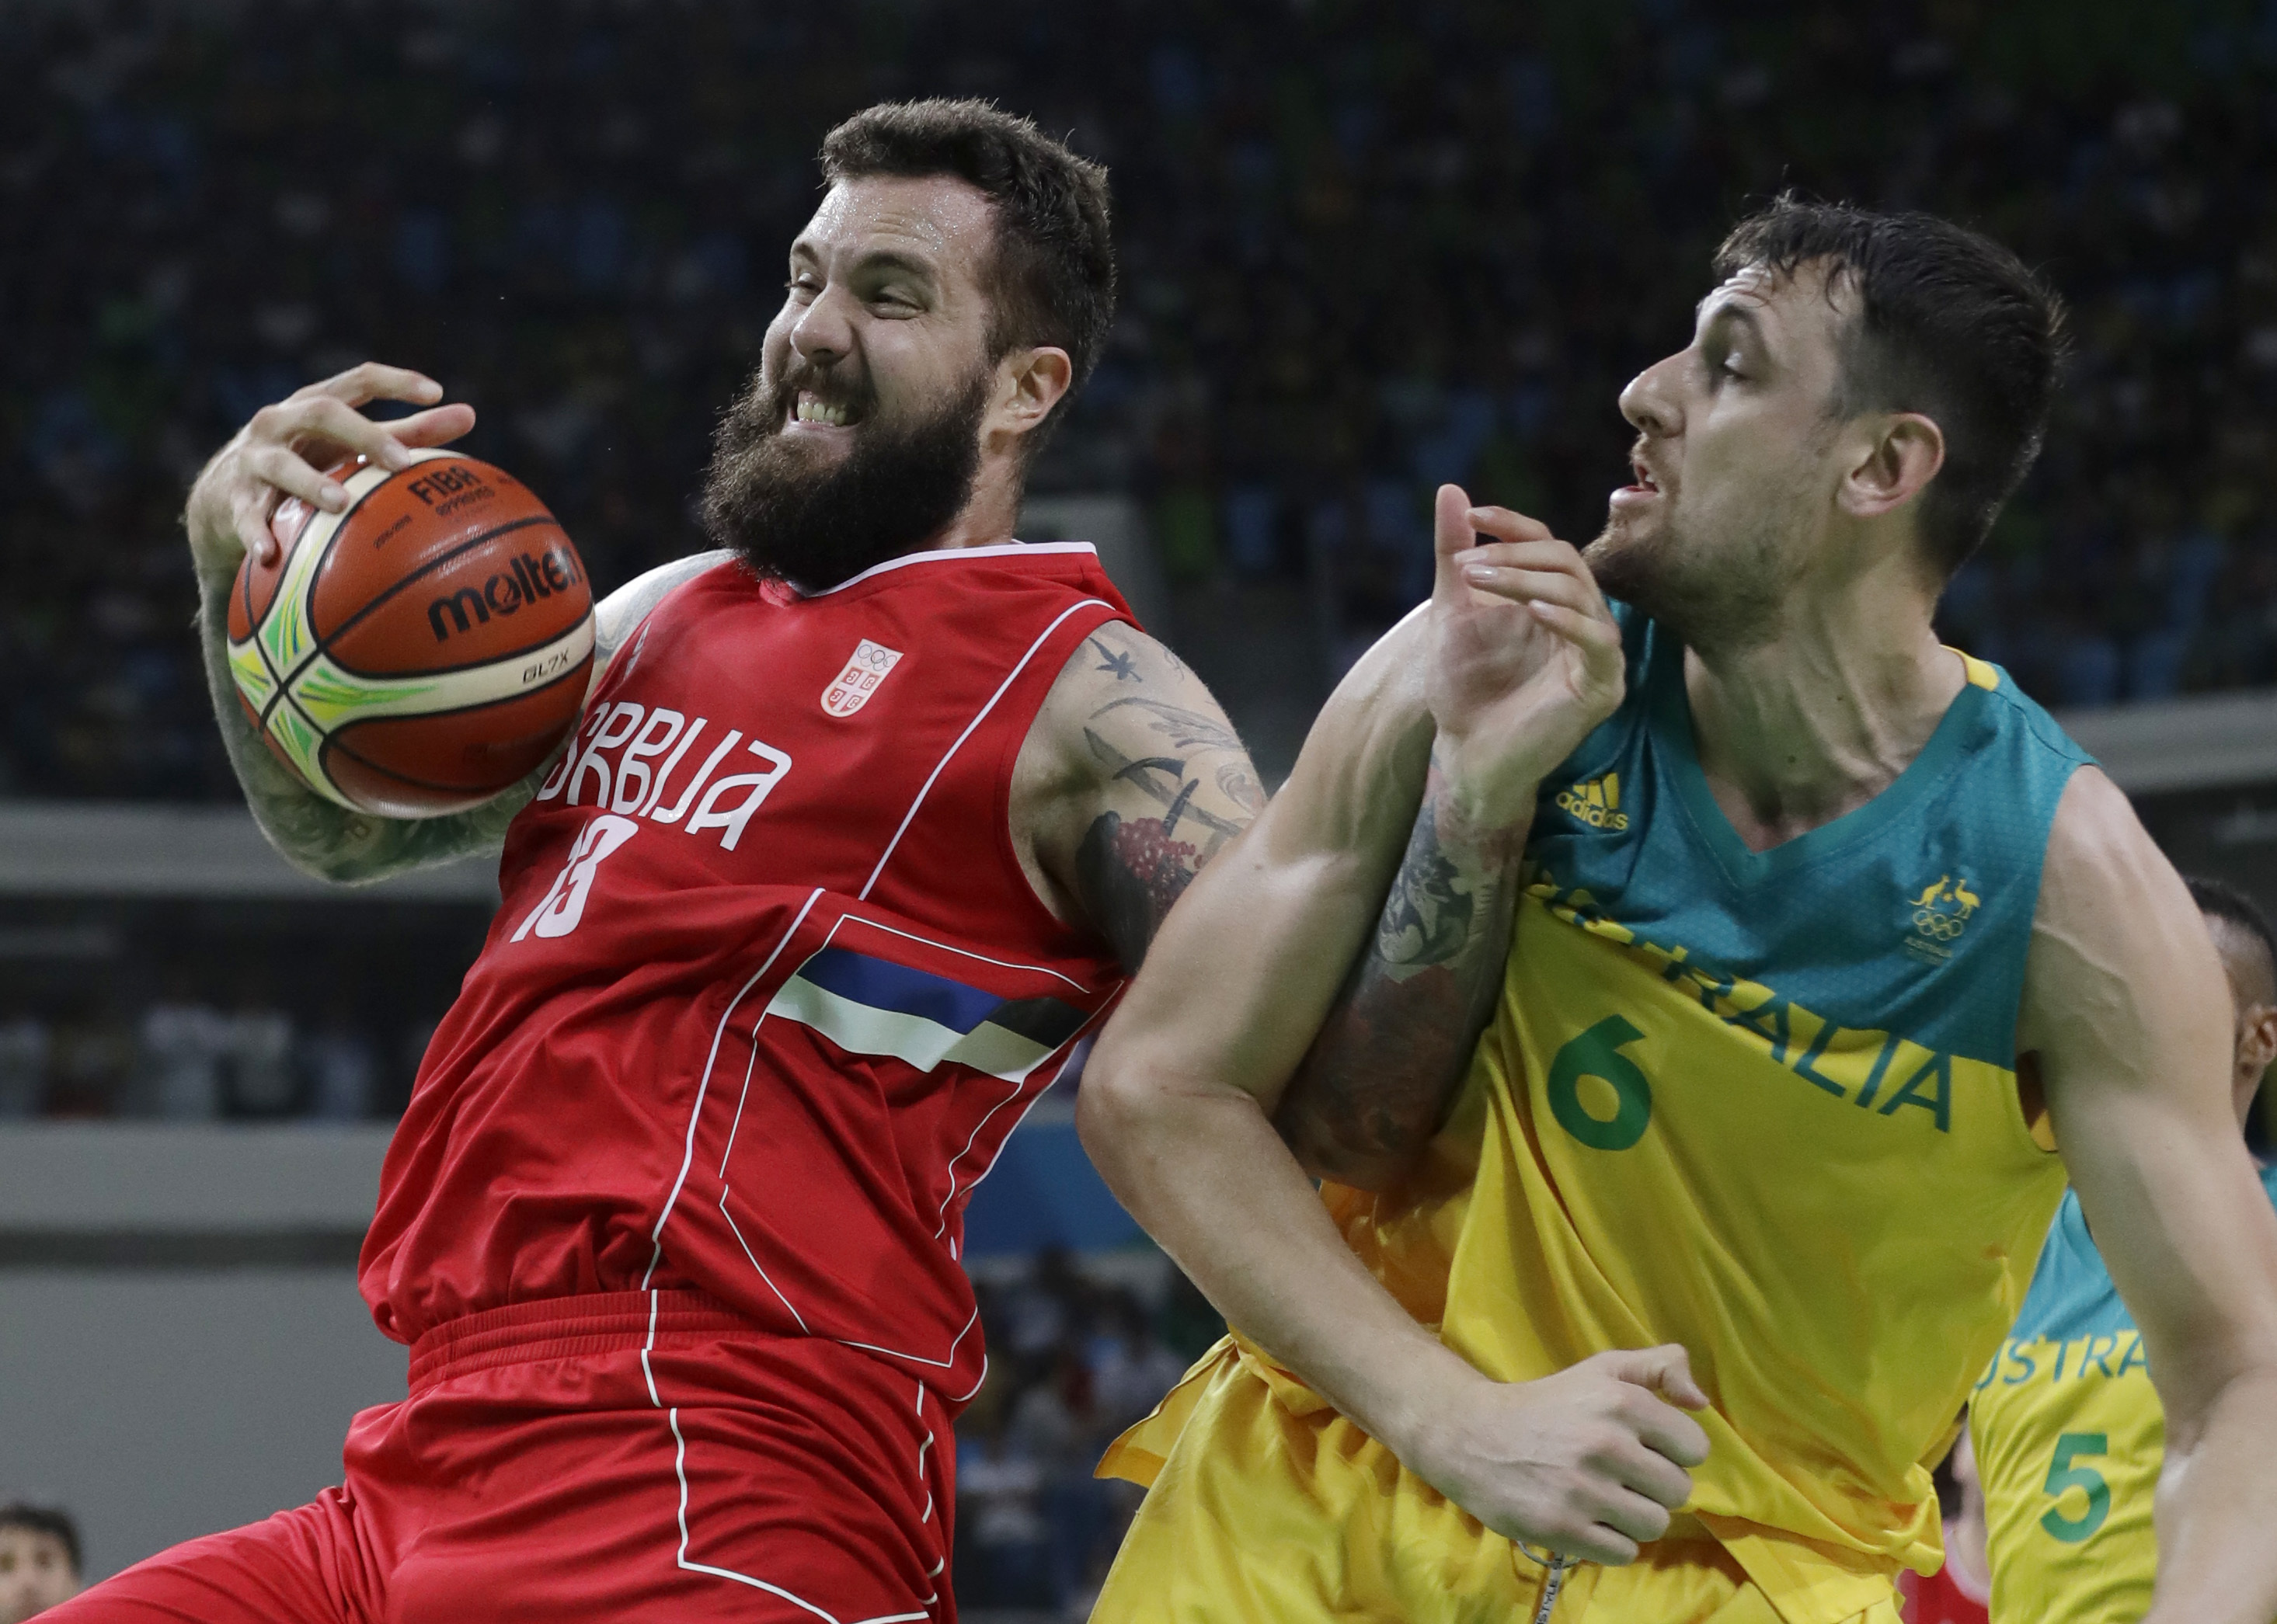 Serbia's Miroslav Raduljica (13) tries to work the ball around Australia's Andrew Bogut (6) during a men's semifinal round basketball game at the 2016 Summer Olympics in Rio de Janeiro, Brazil, Friday, Aug. 19, 2016. (AP Photo/Eric Gay)